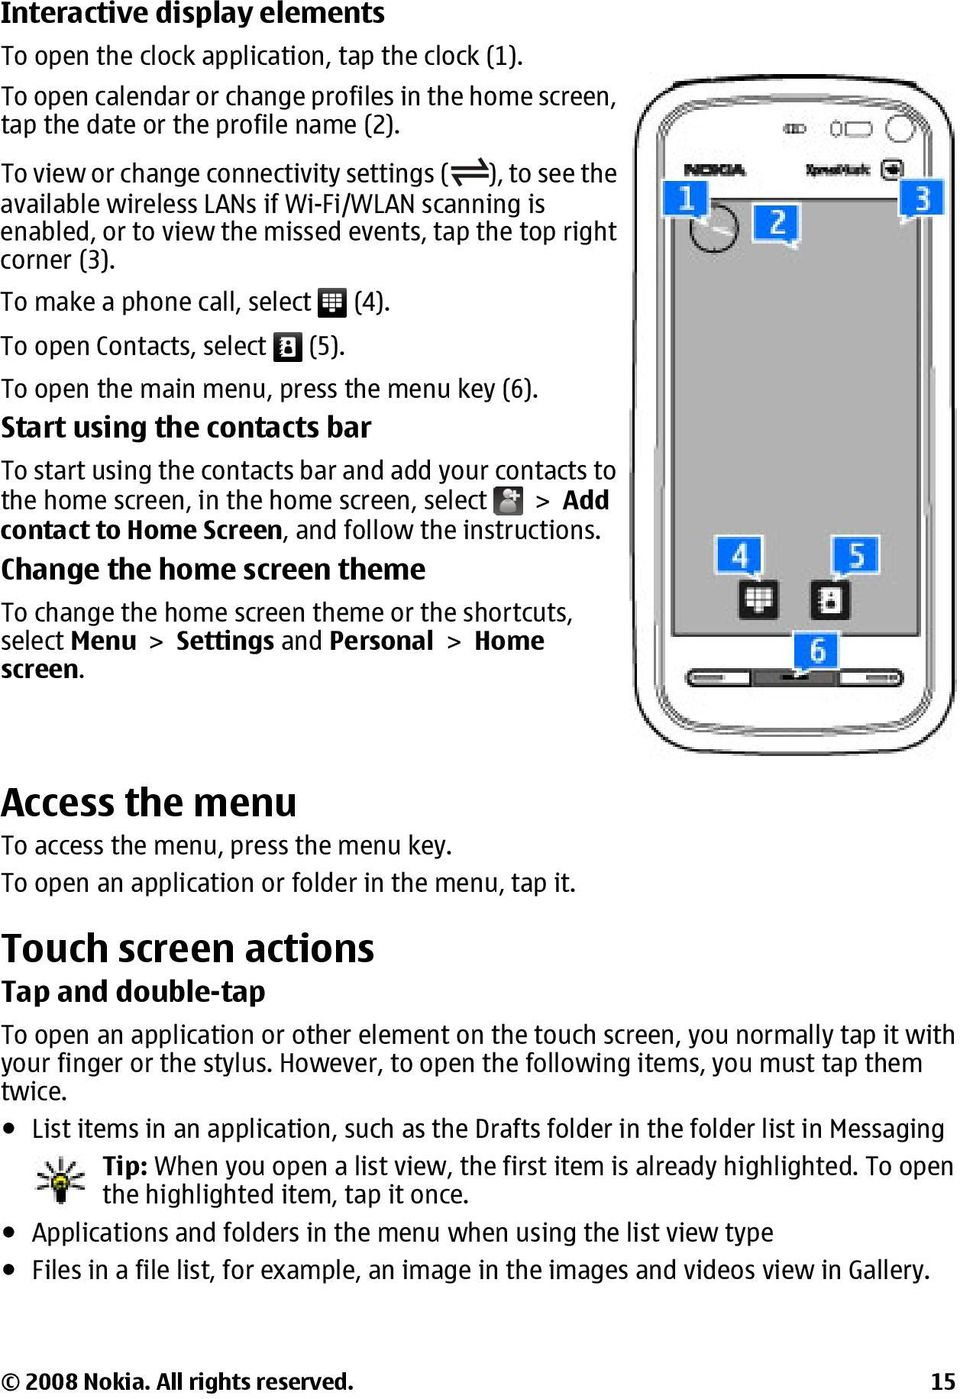 Nokia 5800 Xpressmusic User Guide Pdf Web Browser Diagram To Make A Phone Call Select 4 Open Contacts